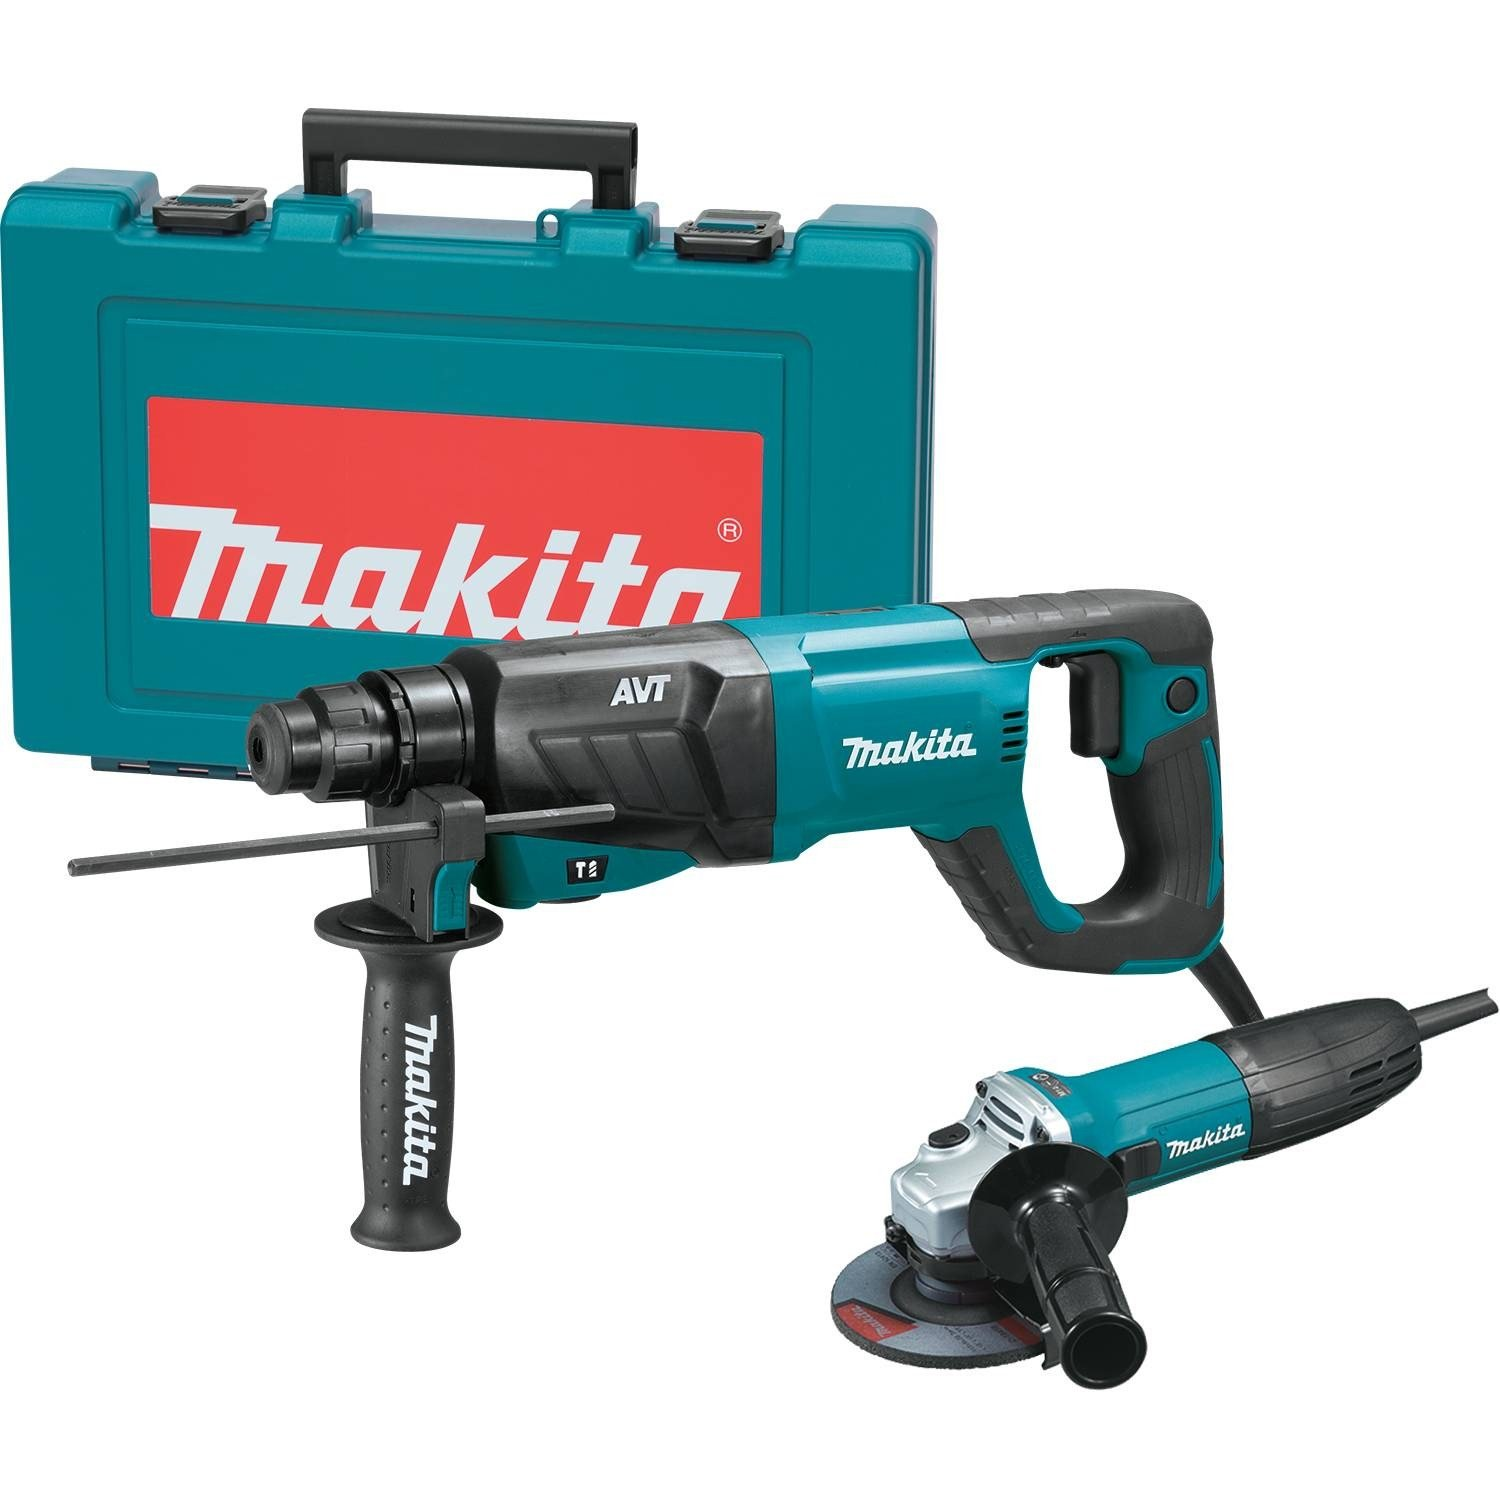 Makita HR2641X1 SDS-PLUS 3-Mode Variable Speed AVT Rotary Hammer with Case and 4-1 2 Angle Grinder, 1